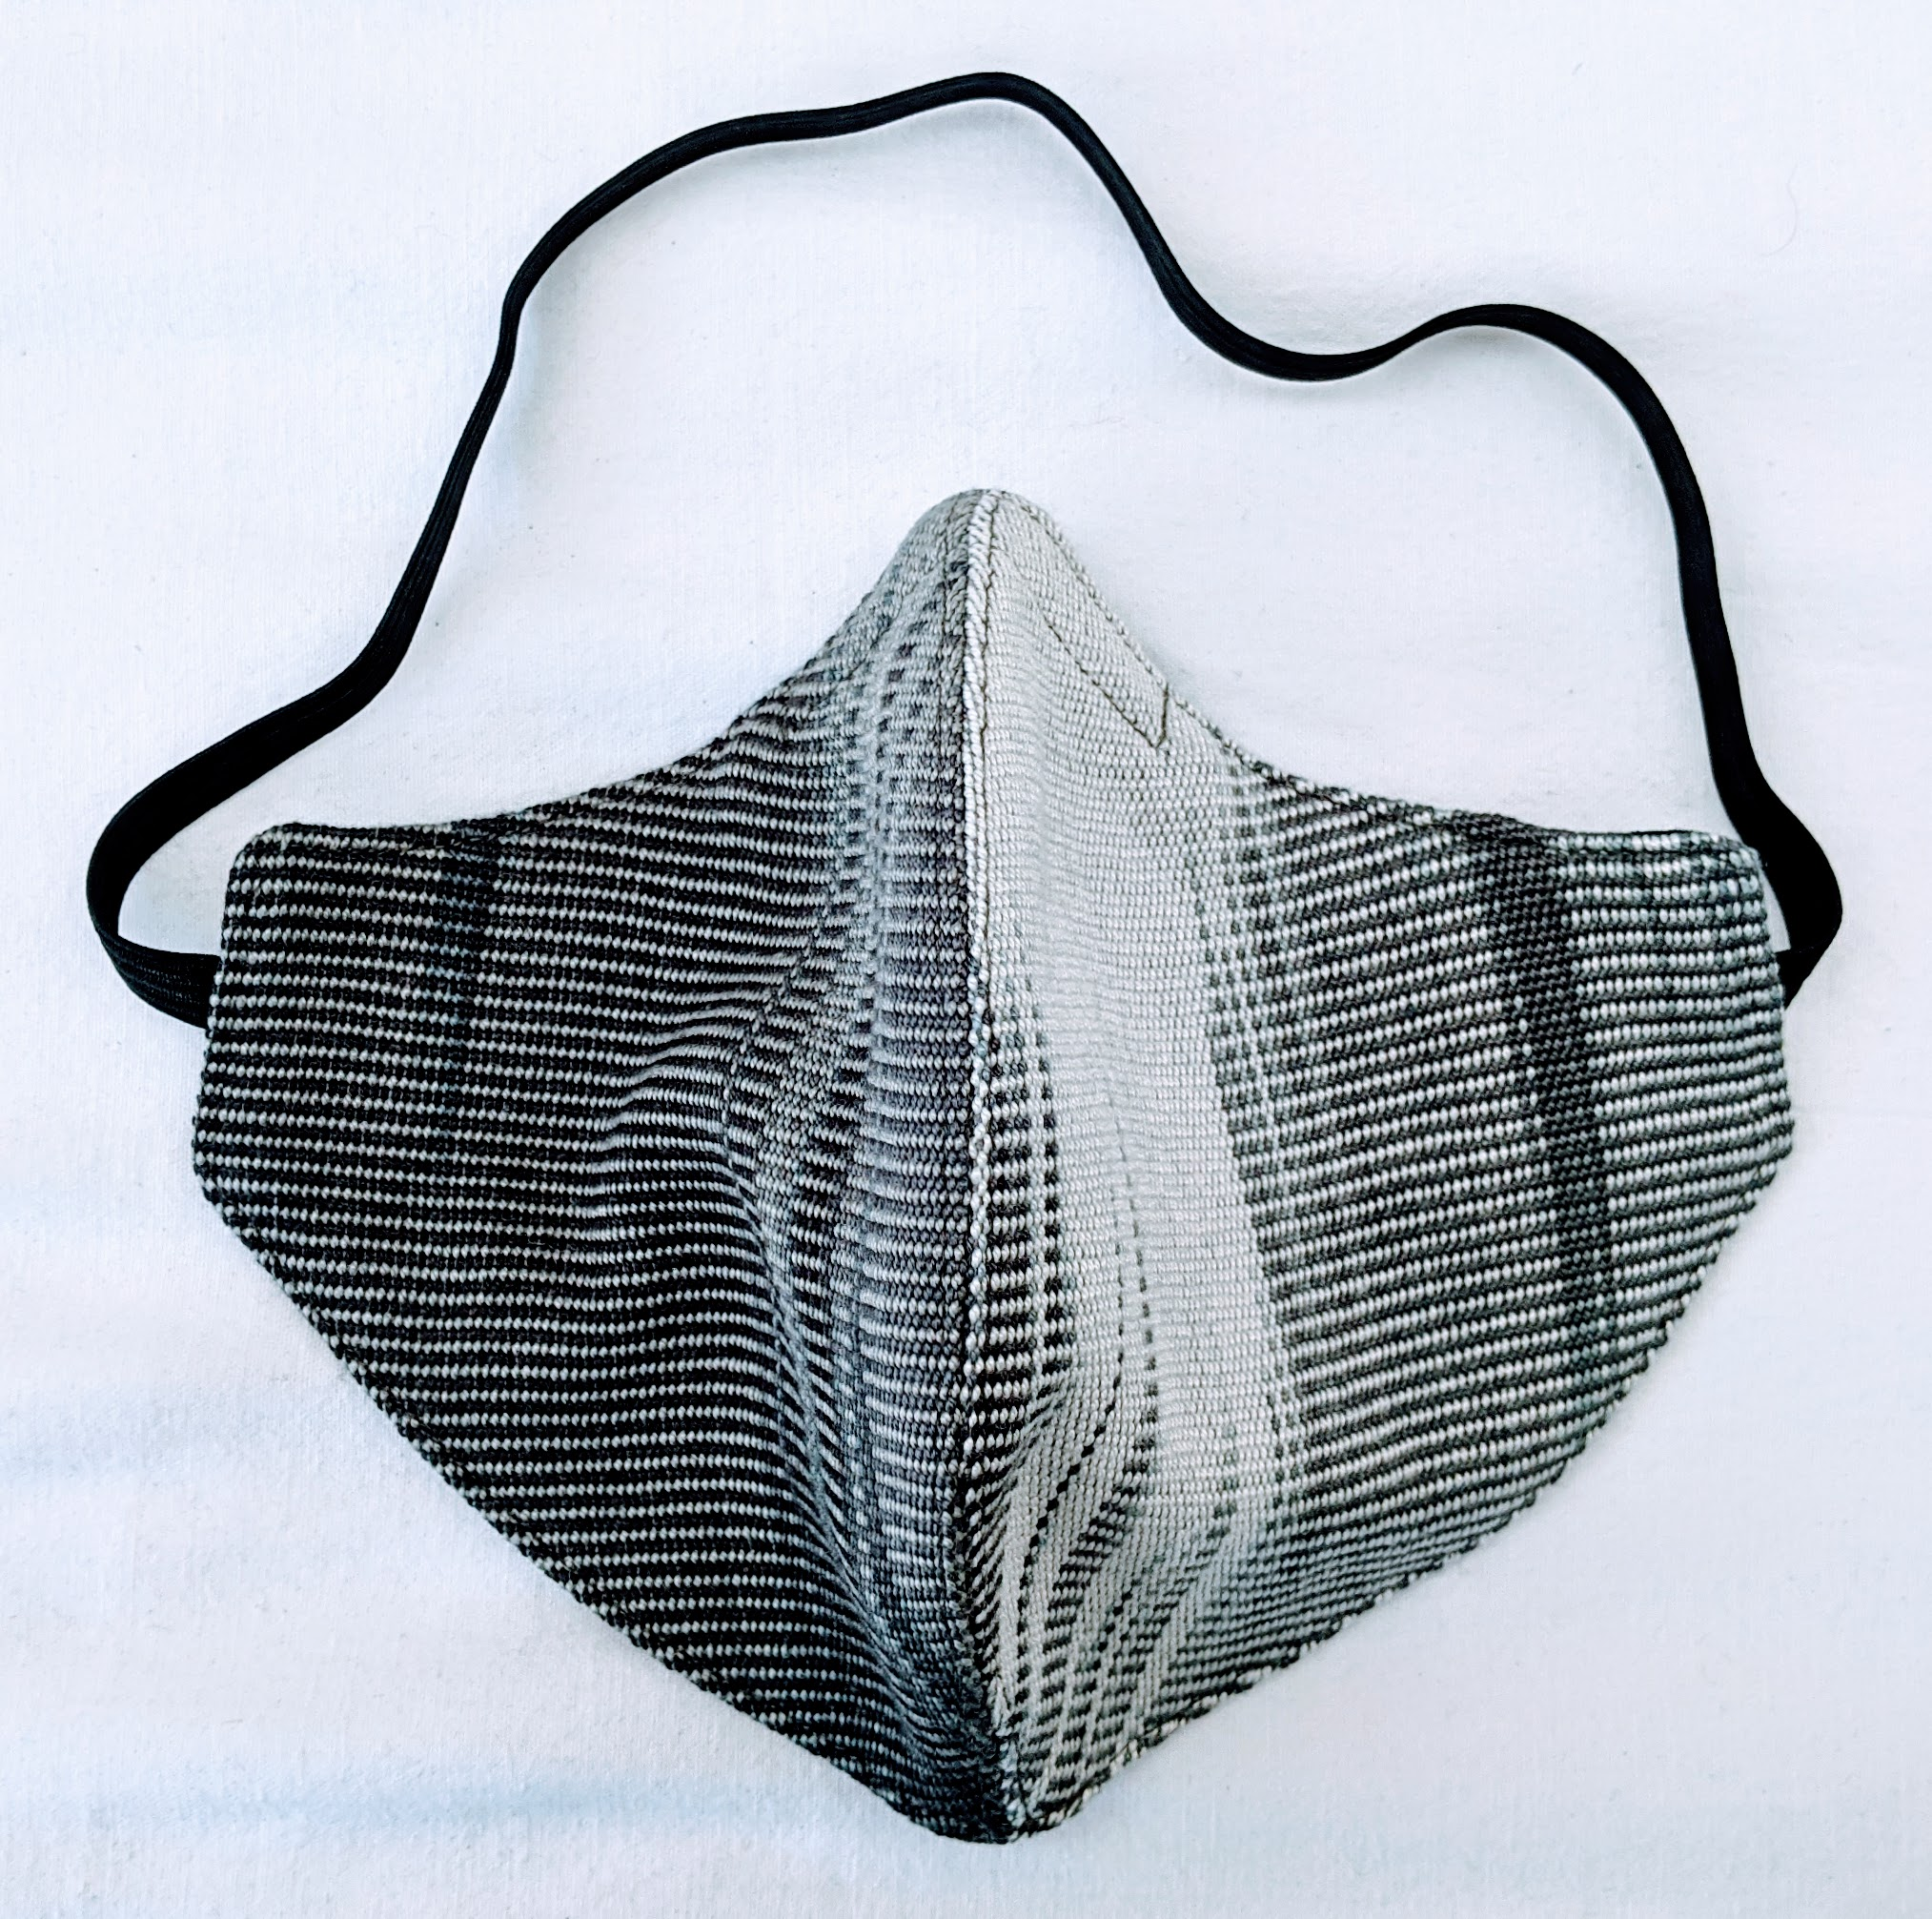 Handwoven Lightweight Bamboo Face Mask with Elastic Behind Head - Black, White, Grays